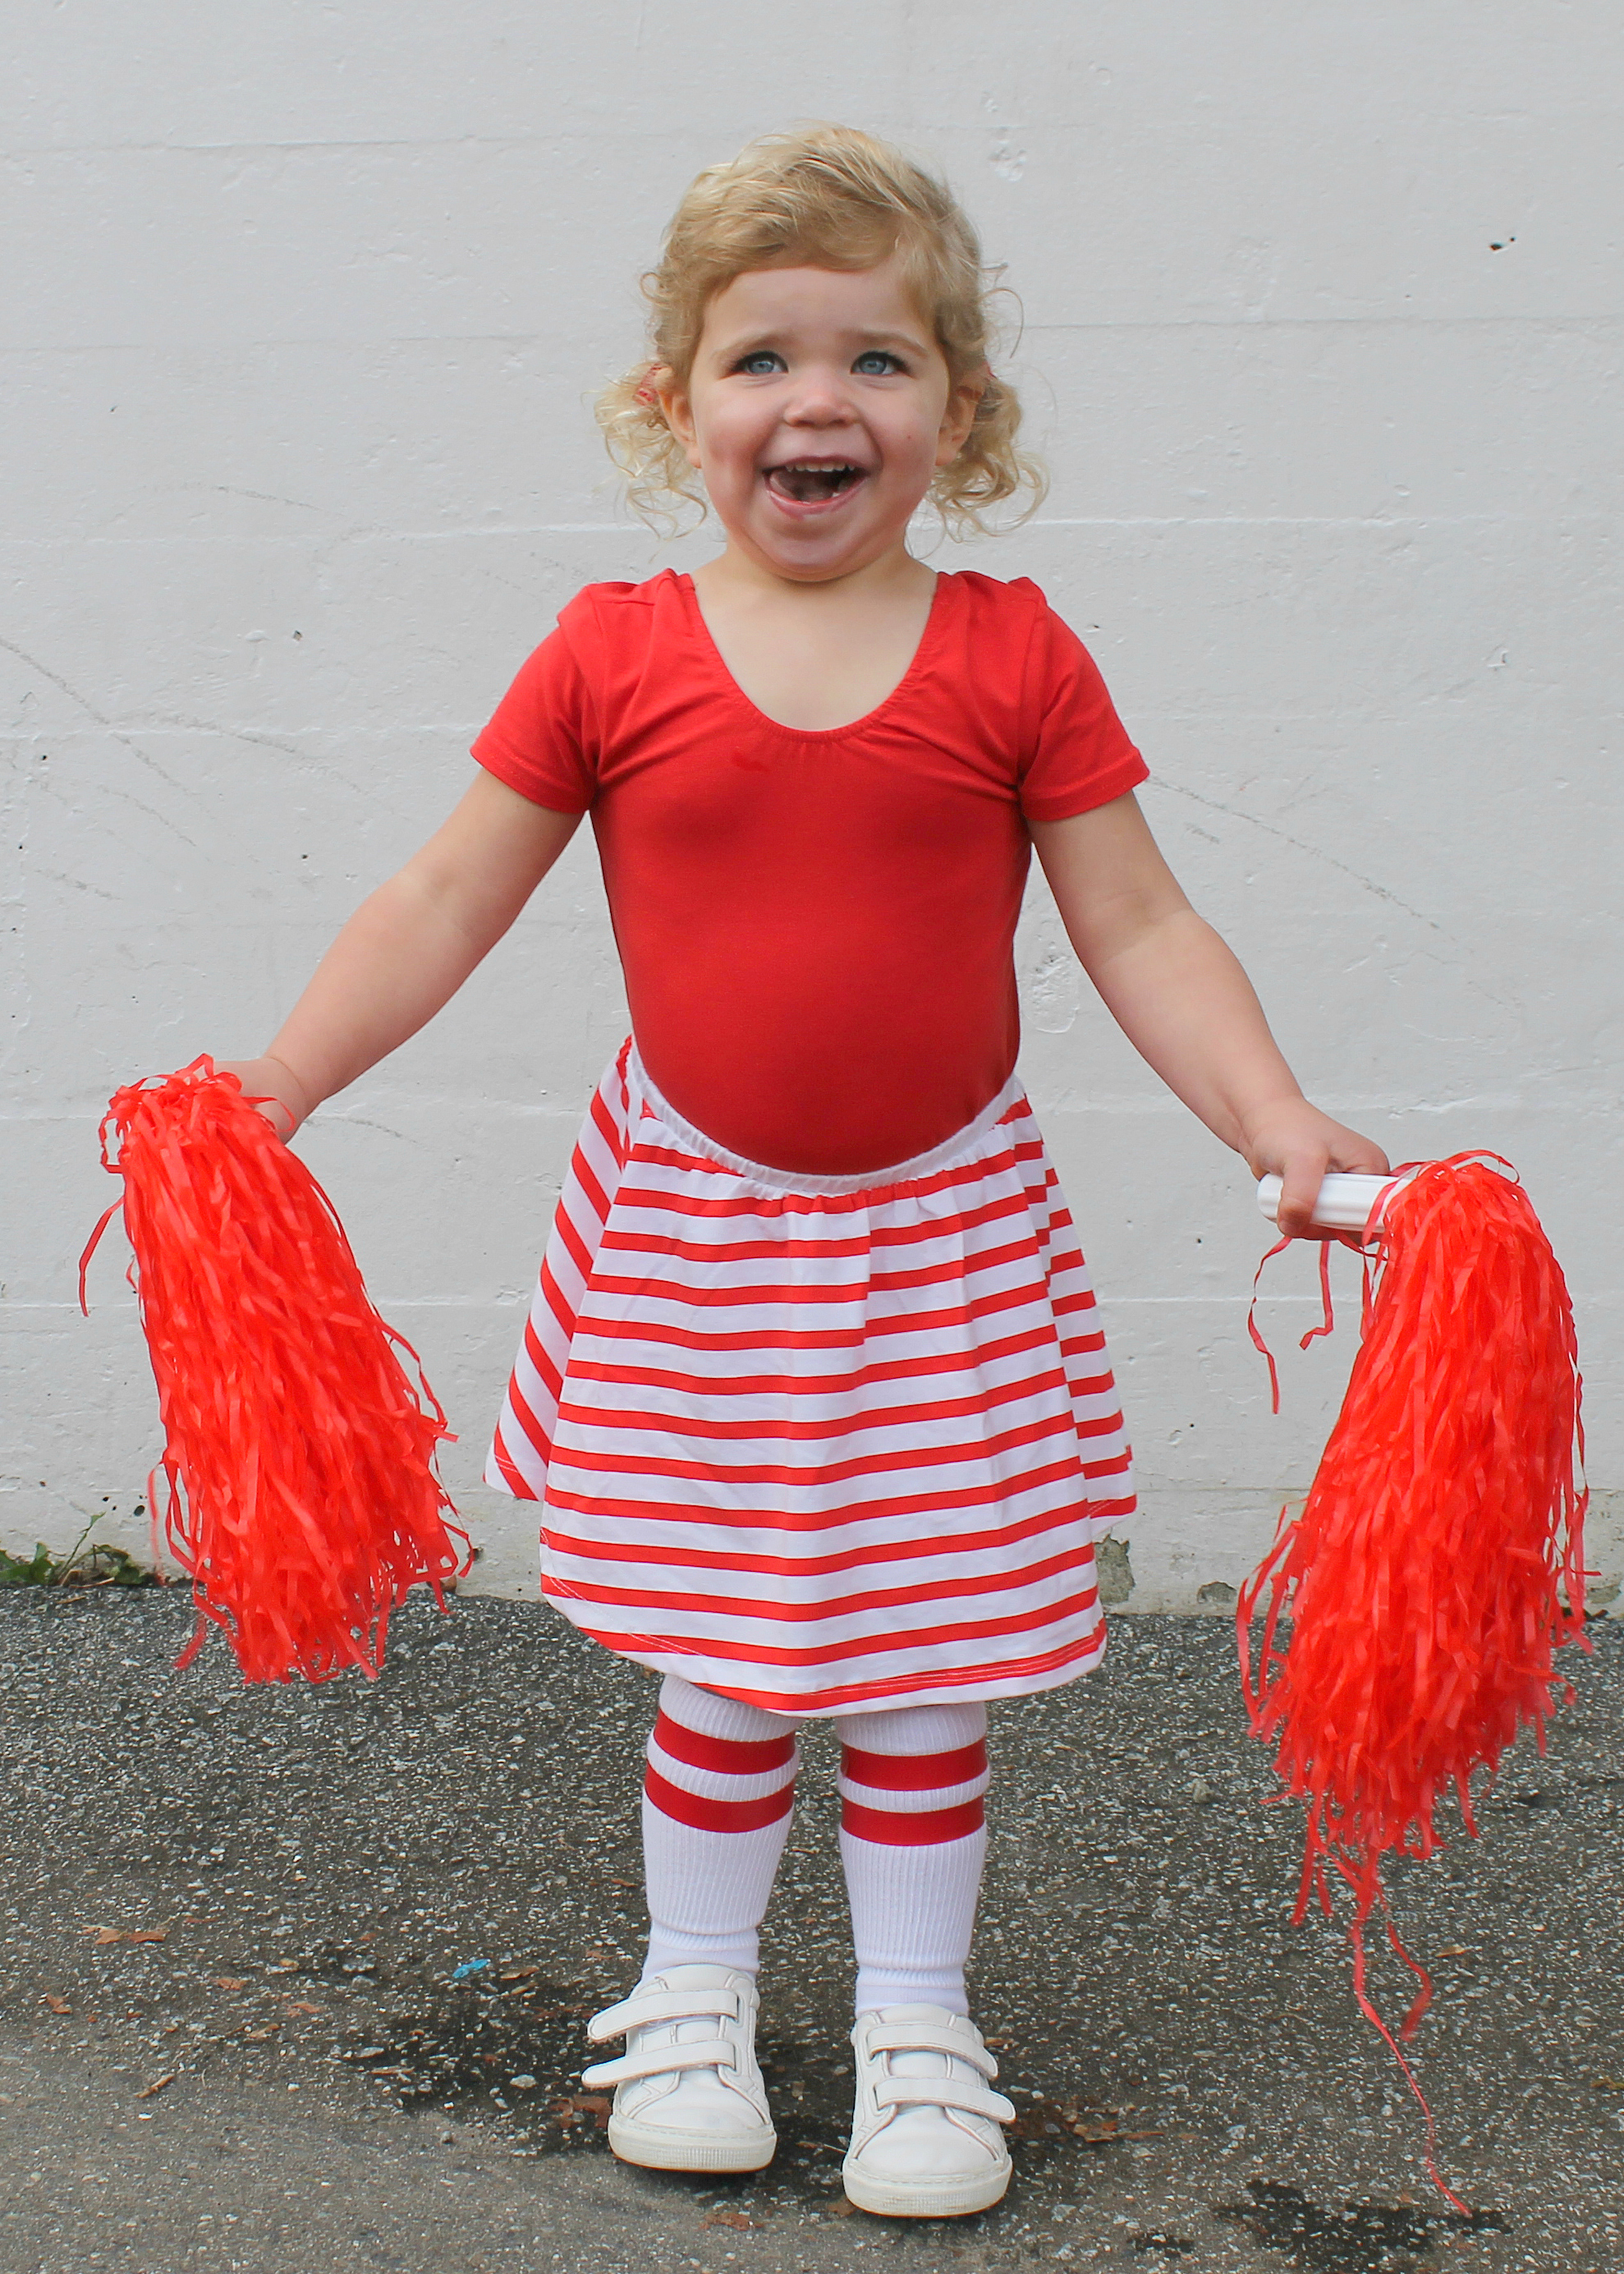 Family Halloween Costume Ideas | Group Costume Ideas | Kids Halloween Costumes | Football Cheerleader Costume